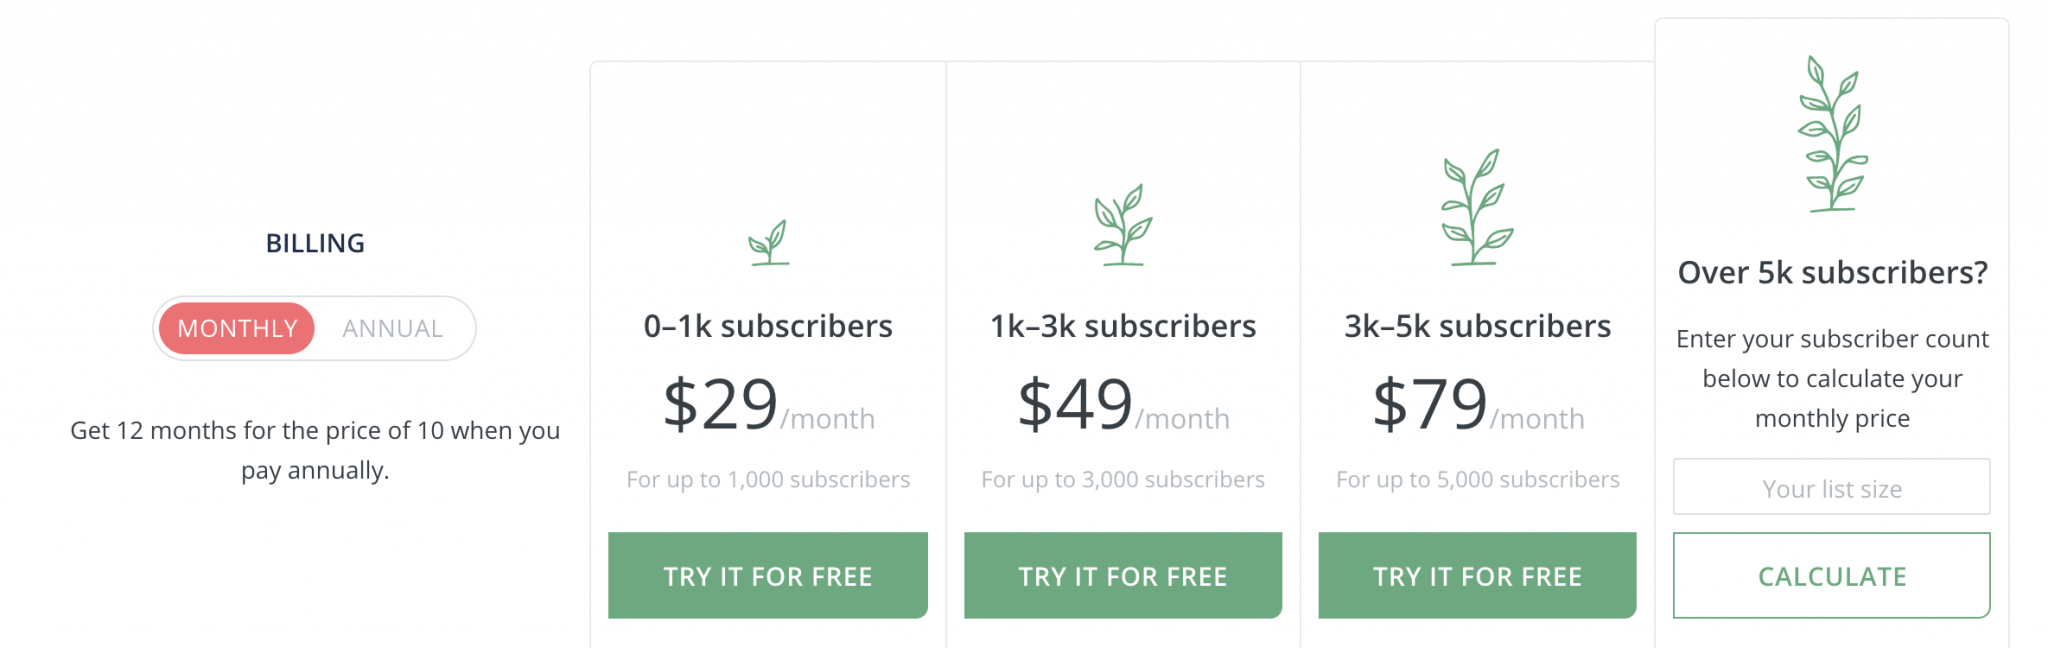 50 Percent Off Online Voucher Code Printable Convertkit May 2020